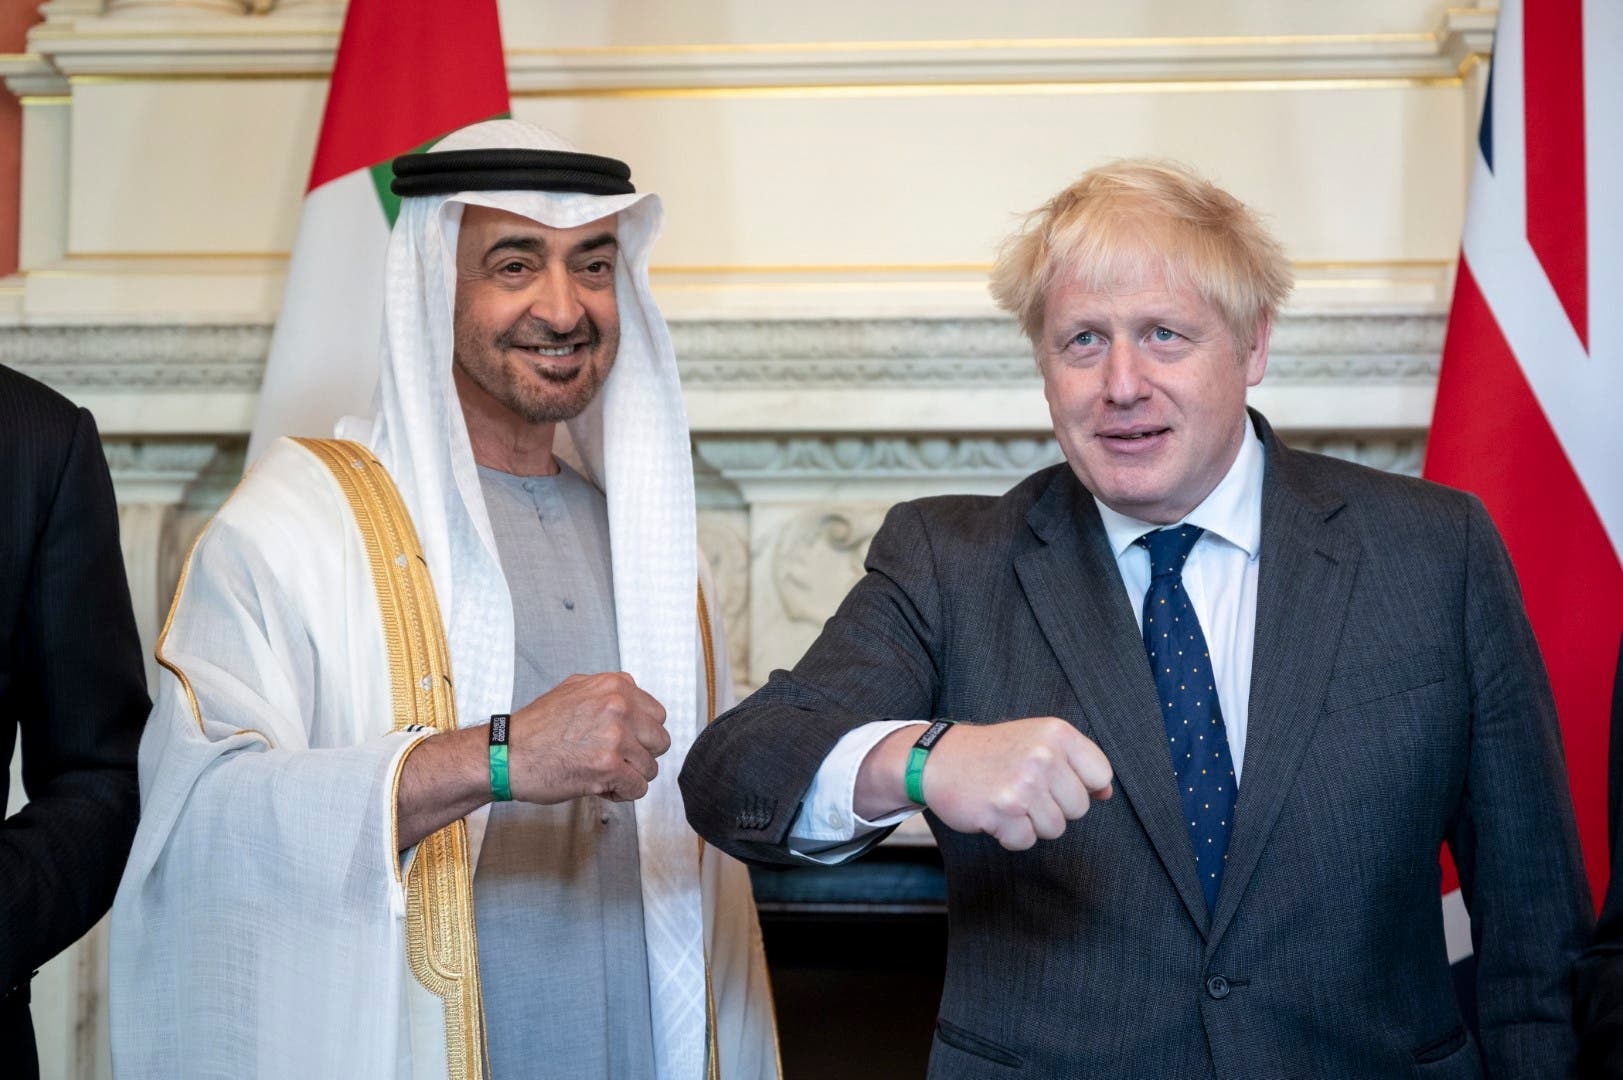 Sheikh Mohamed bin Zayed Al Nahyan, Crown Prince of Abu Dhabi and Deputy Supreme Commander of the UAE Armed Forces, and Boris Johnson, Prime Minister of the United Kingdom (UK), have discussed the historic friendship ties and joint strategic cooperation between the UAE and the UK and ways to enhance relations in the best interest of the two sides. (Supplied: WAM)